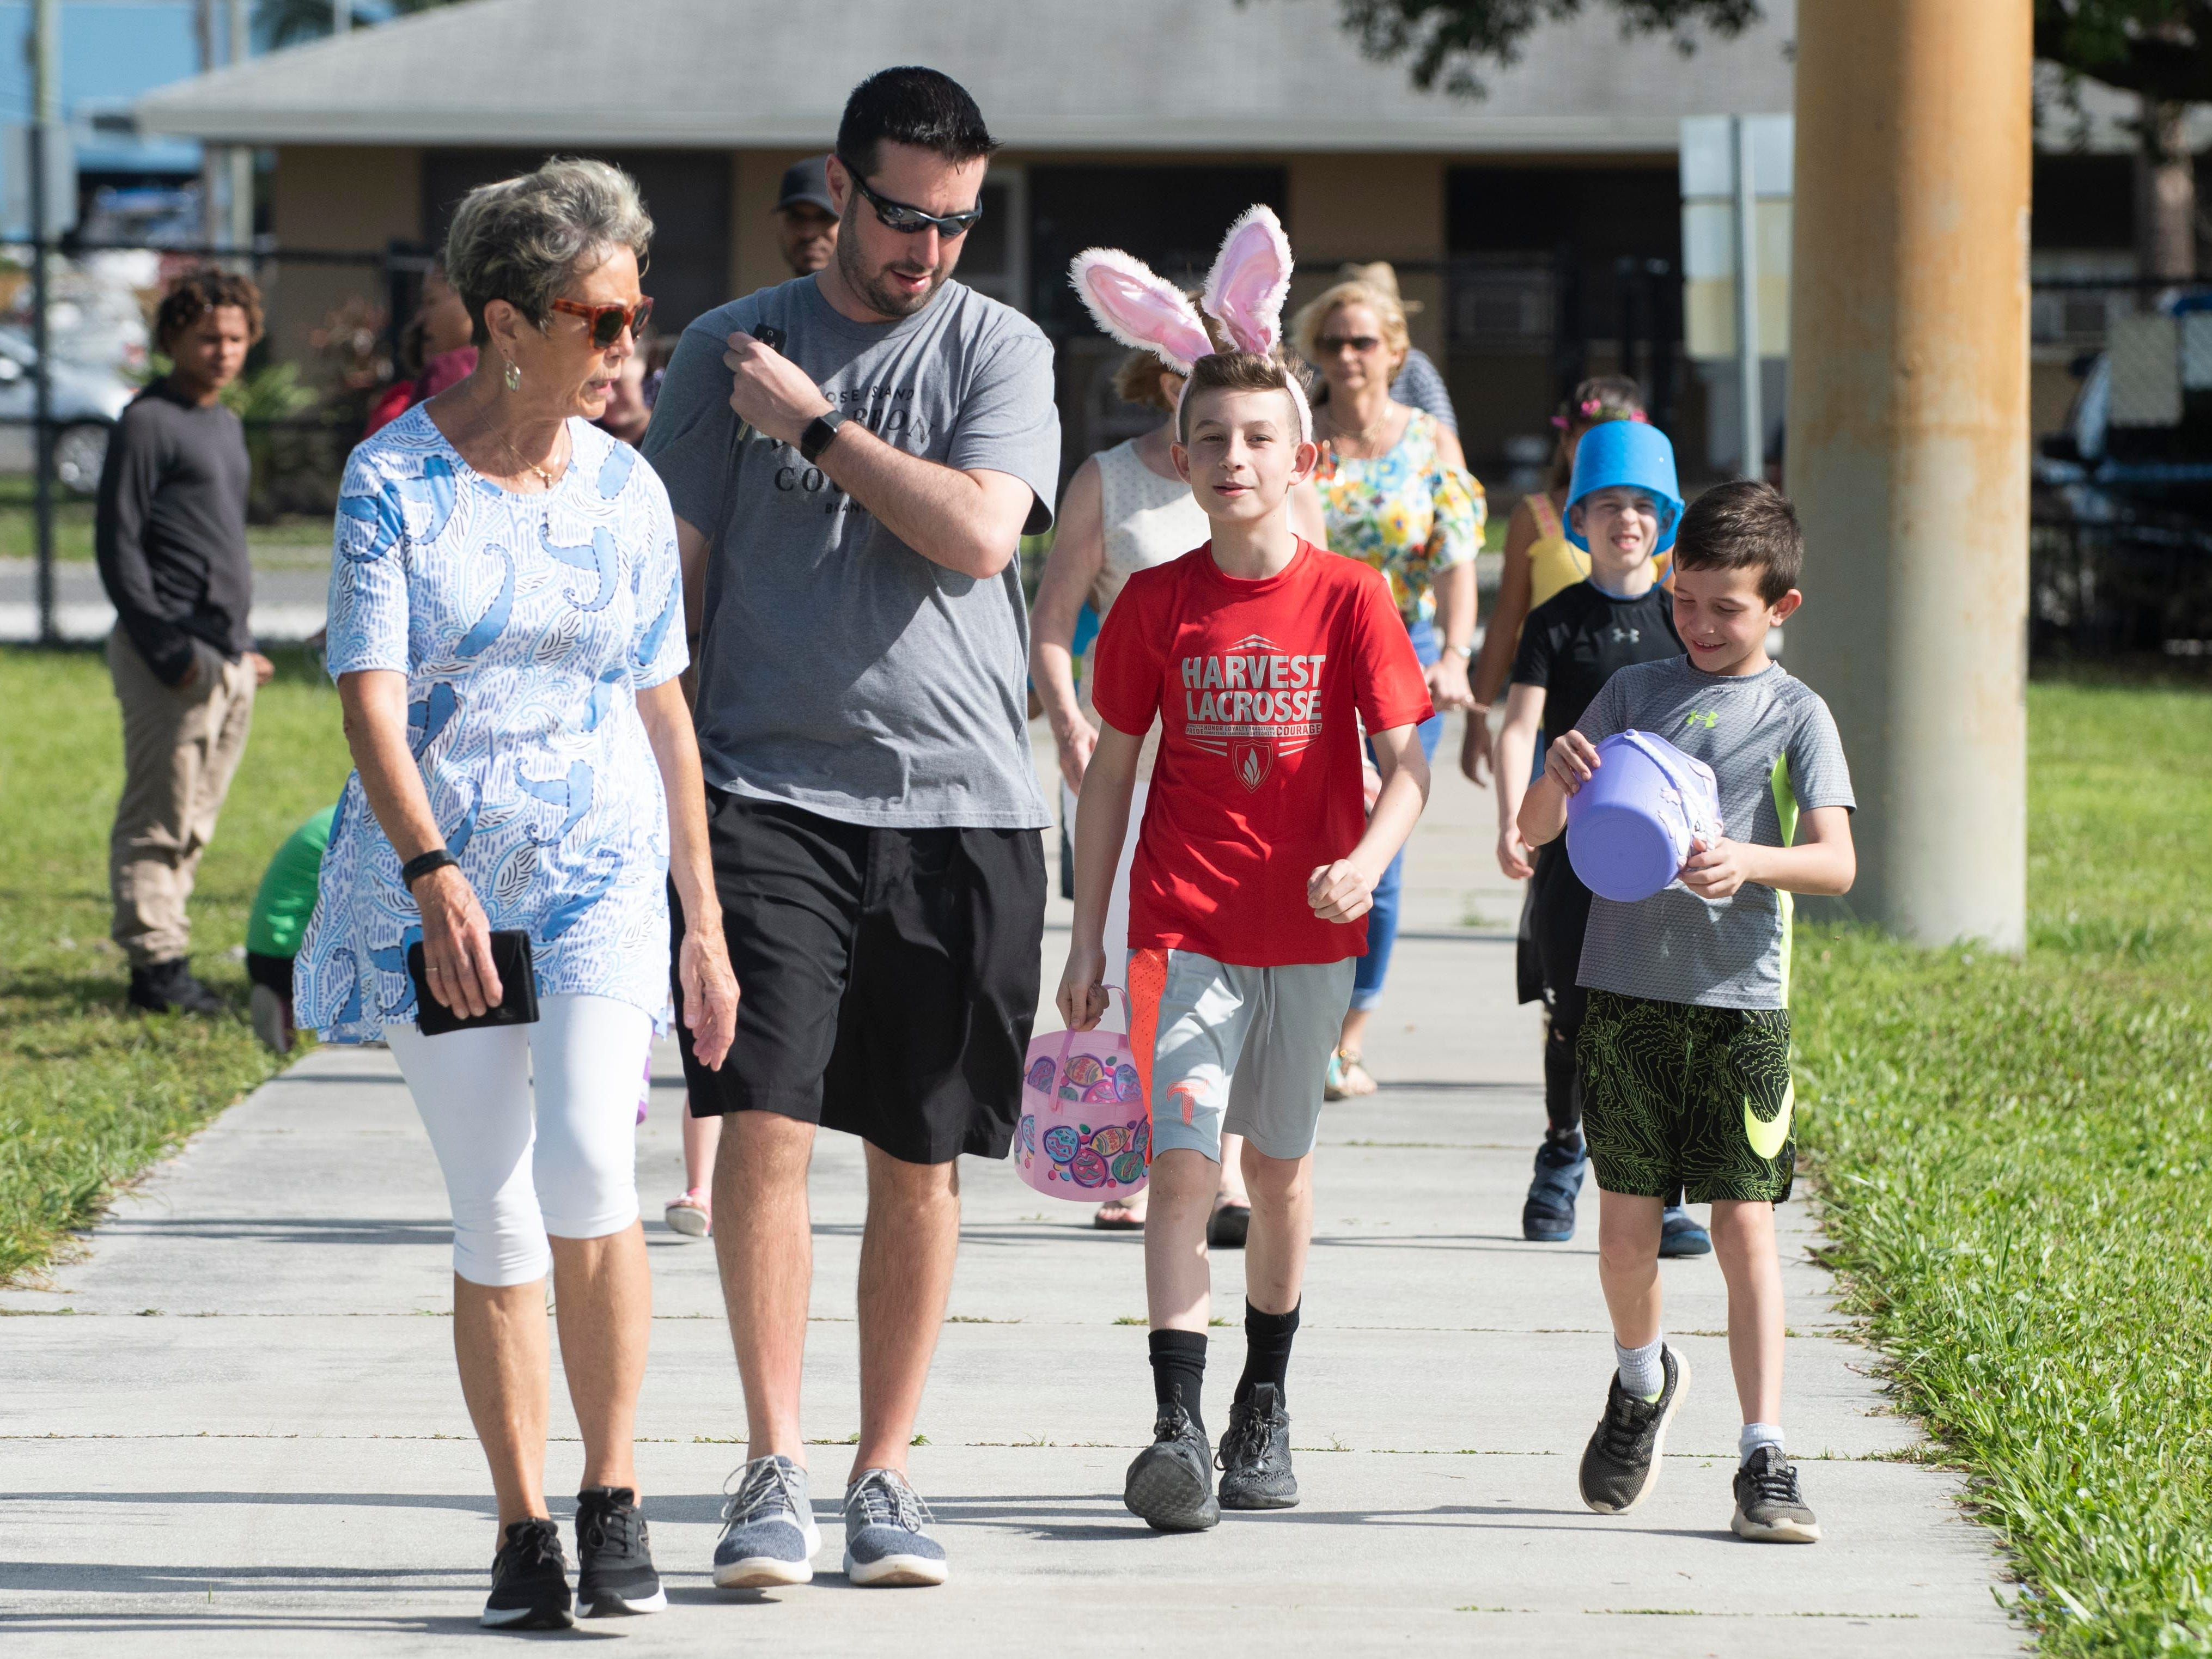 The Spring Community Mixer and Egg Hunt was held on Saturday, April 13, 2019, at the 10th Street Community Center Guy Davis Sports Complex in Stuart. The hunt was divided into four, separate age groups. The free event also included golden eggs, face painting, carnival games, inflatables and free popcorn, snow cones and a hot dog lunch.